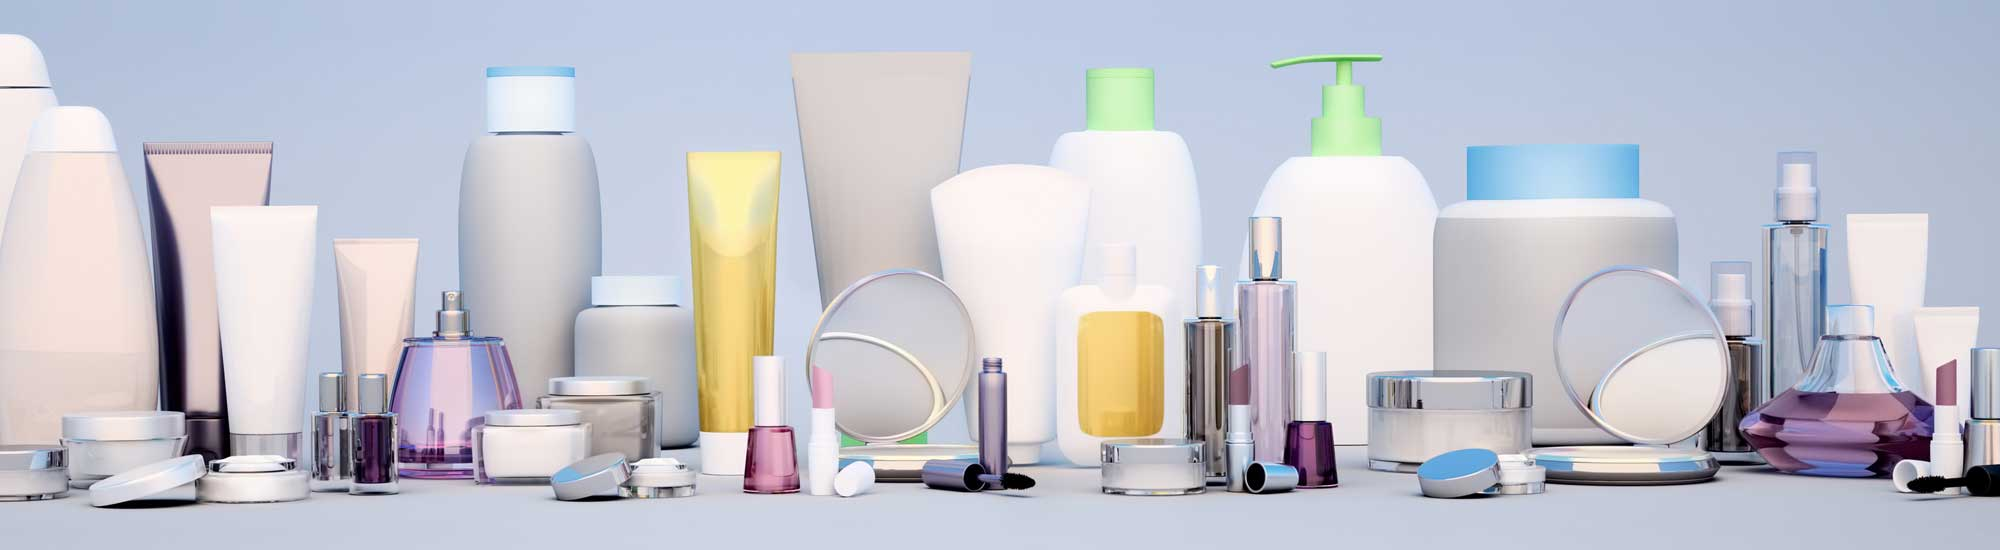 COSMETICS, PERSONAL CARE, BEAUTY AND HOUSEHOLD ITEMS